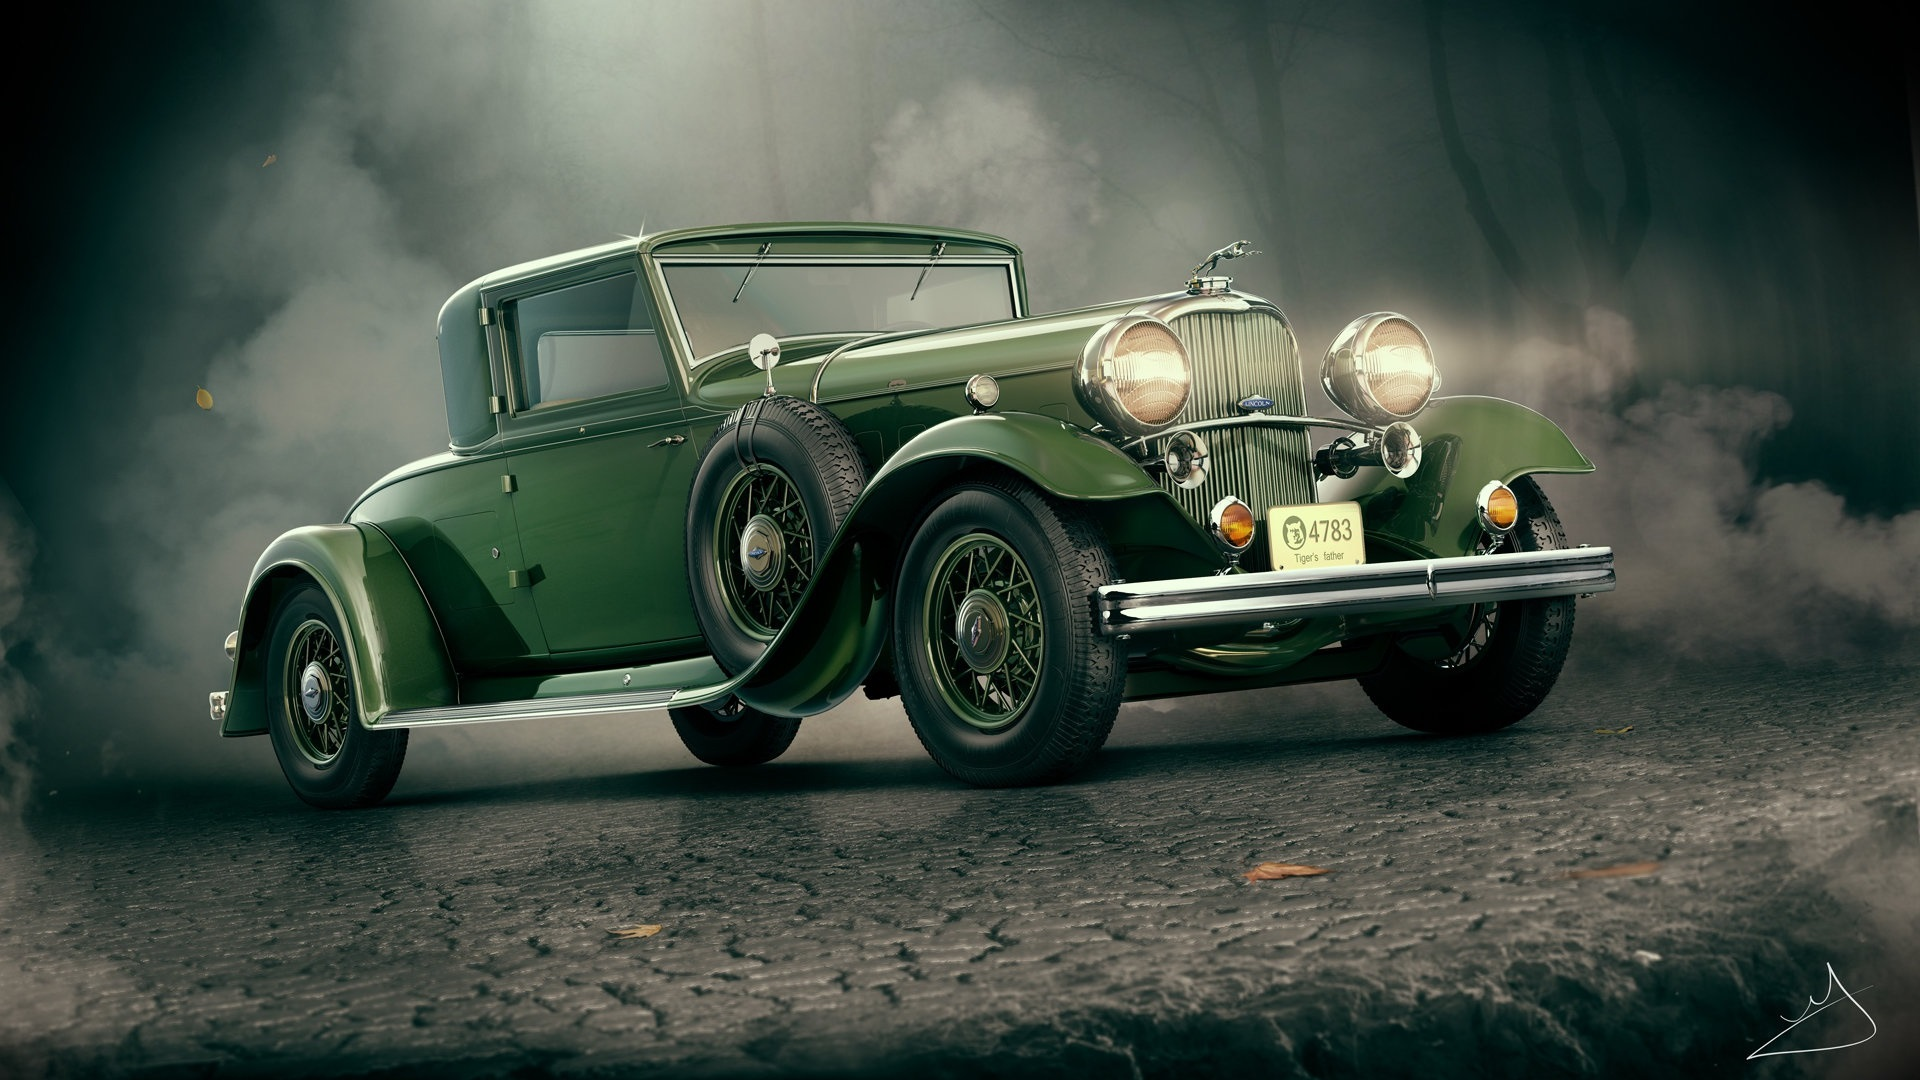 Wallpaper 1932 Lincoln Kb Green Car 1920x1080 Full Hd 2k Picture Image